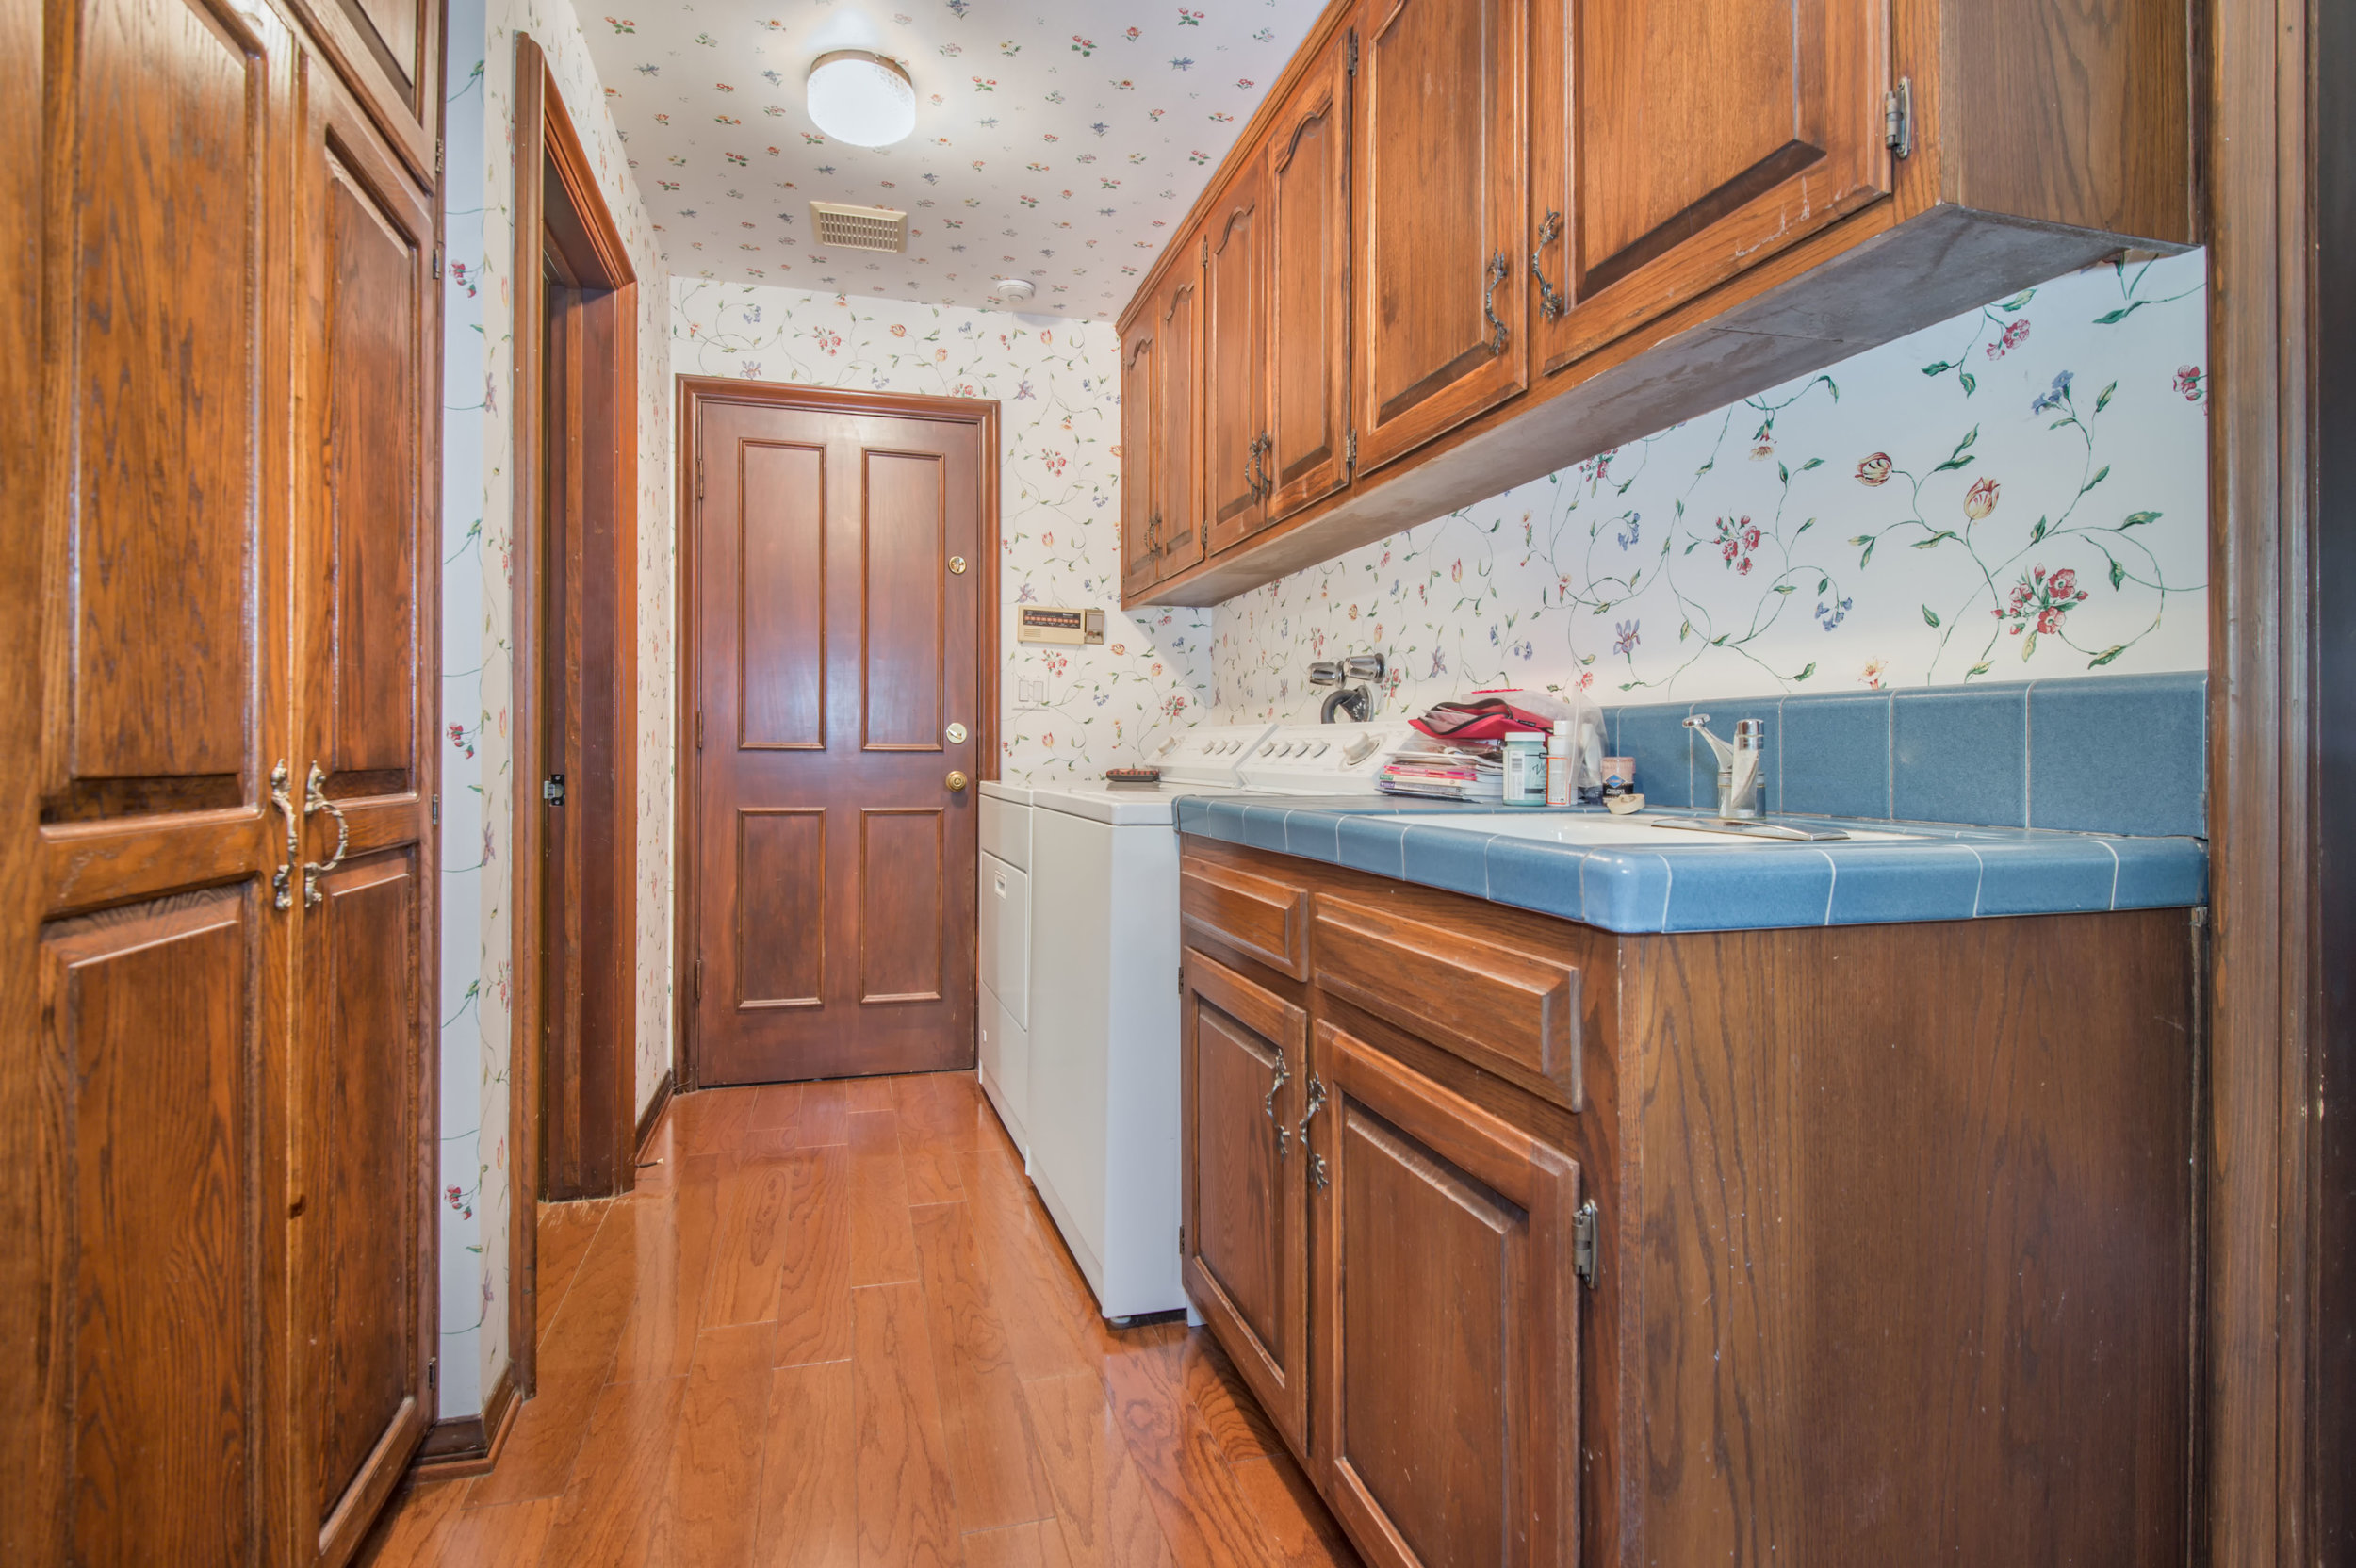 015 Laundry 3191 Toppington Drive Beverly Hills For Sale Lease The Malibu Life Team Luxury Real Estate.jpg